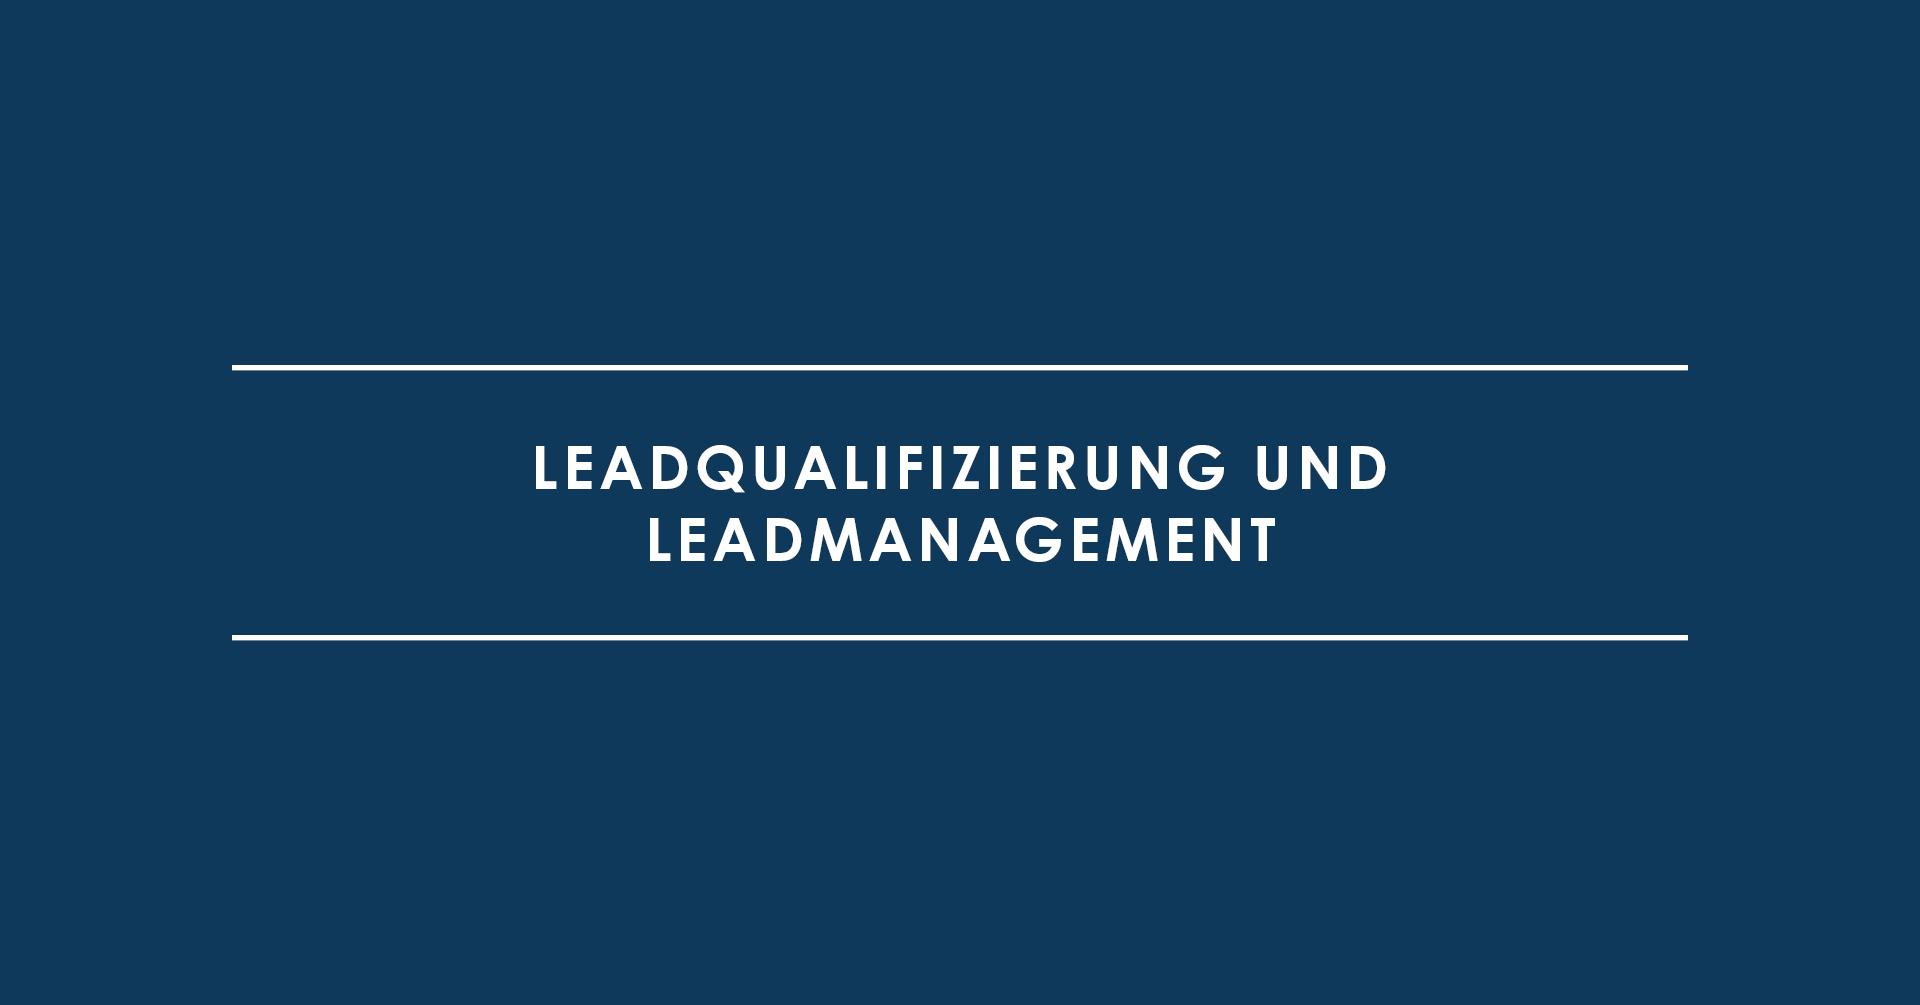 Leadqualifizierung und Leadmanagement